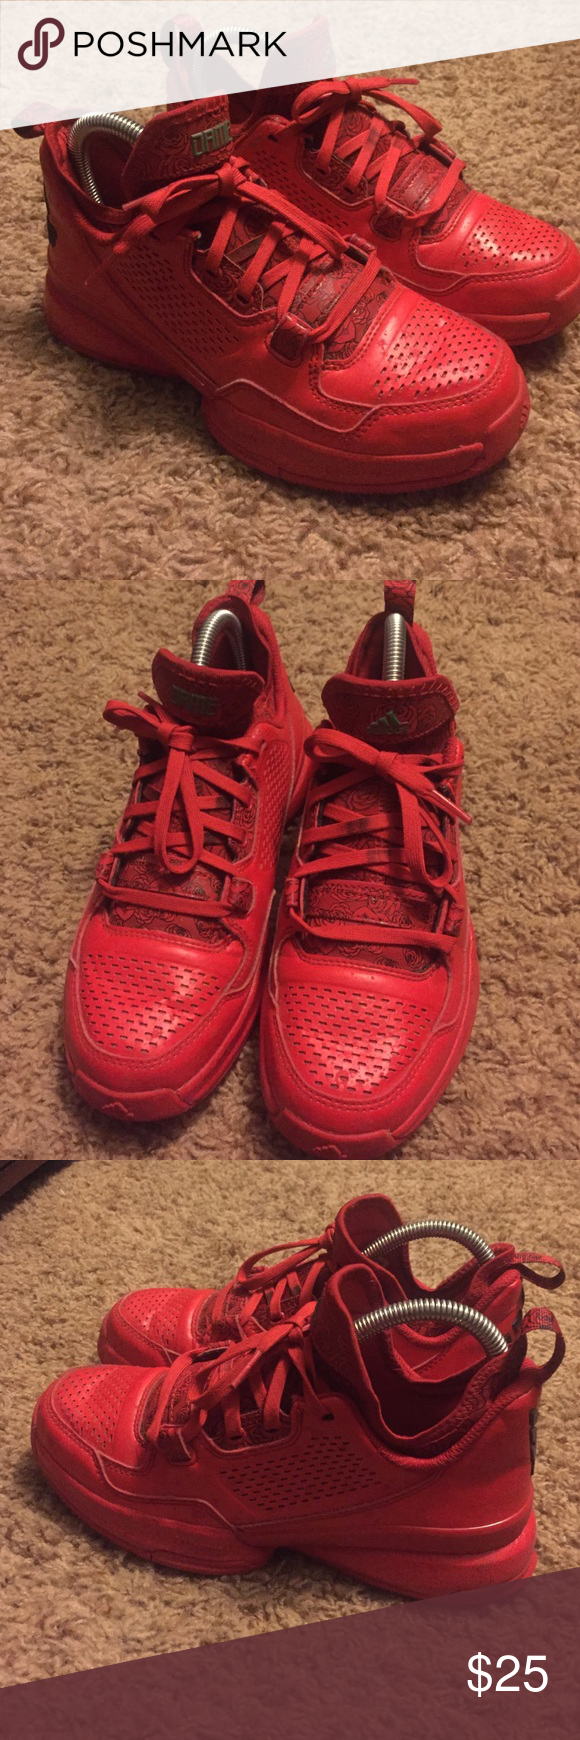 Adidas Damian lillard 1 rose city yeezy boost 350 These shoes are a youth 4  which is a women s 5.5 they are in good but worn condition and very hard to  find ... d7b9427598